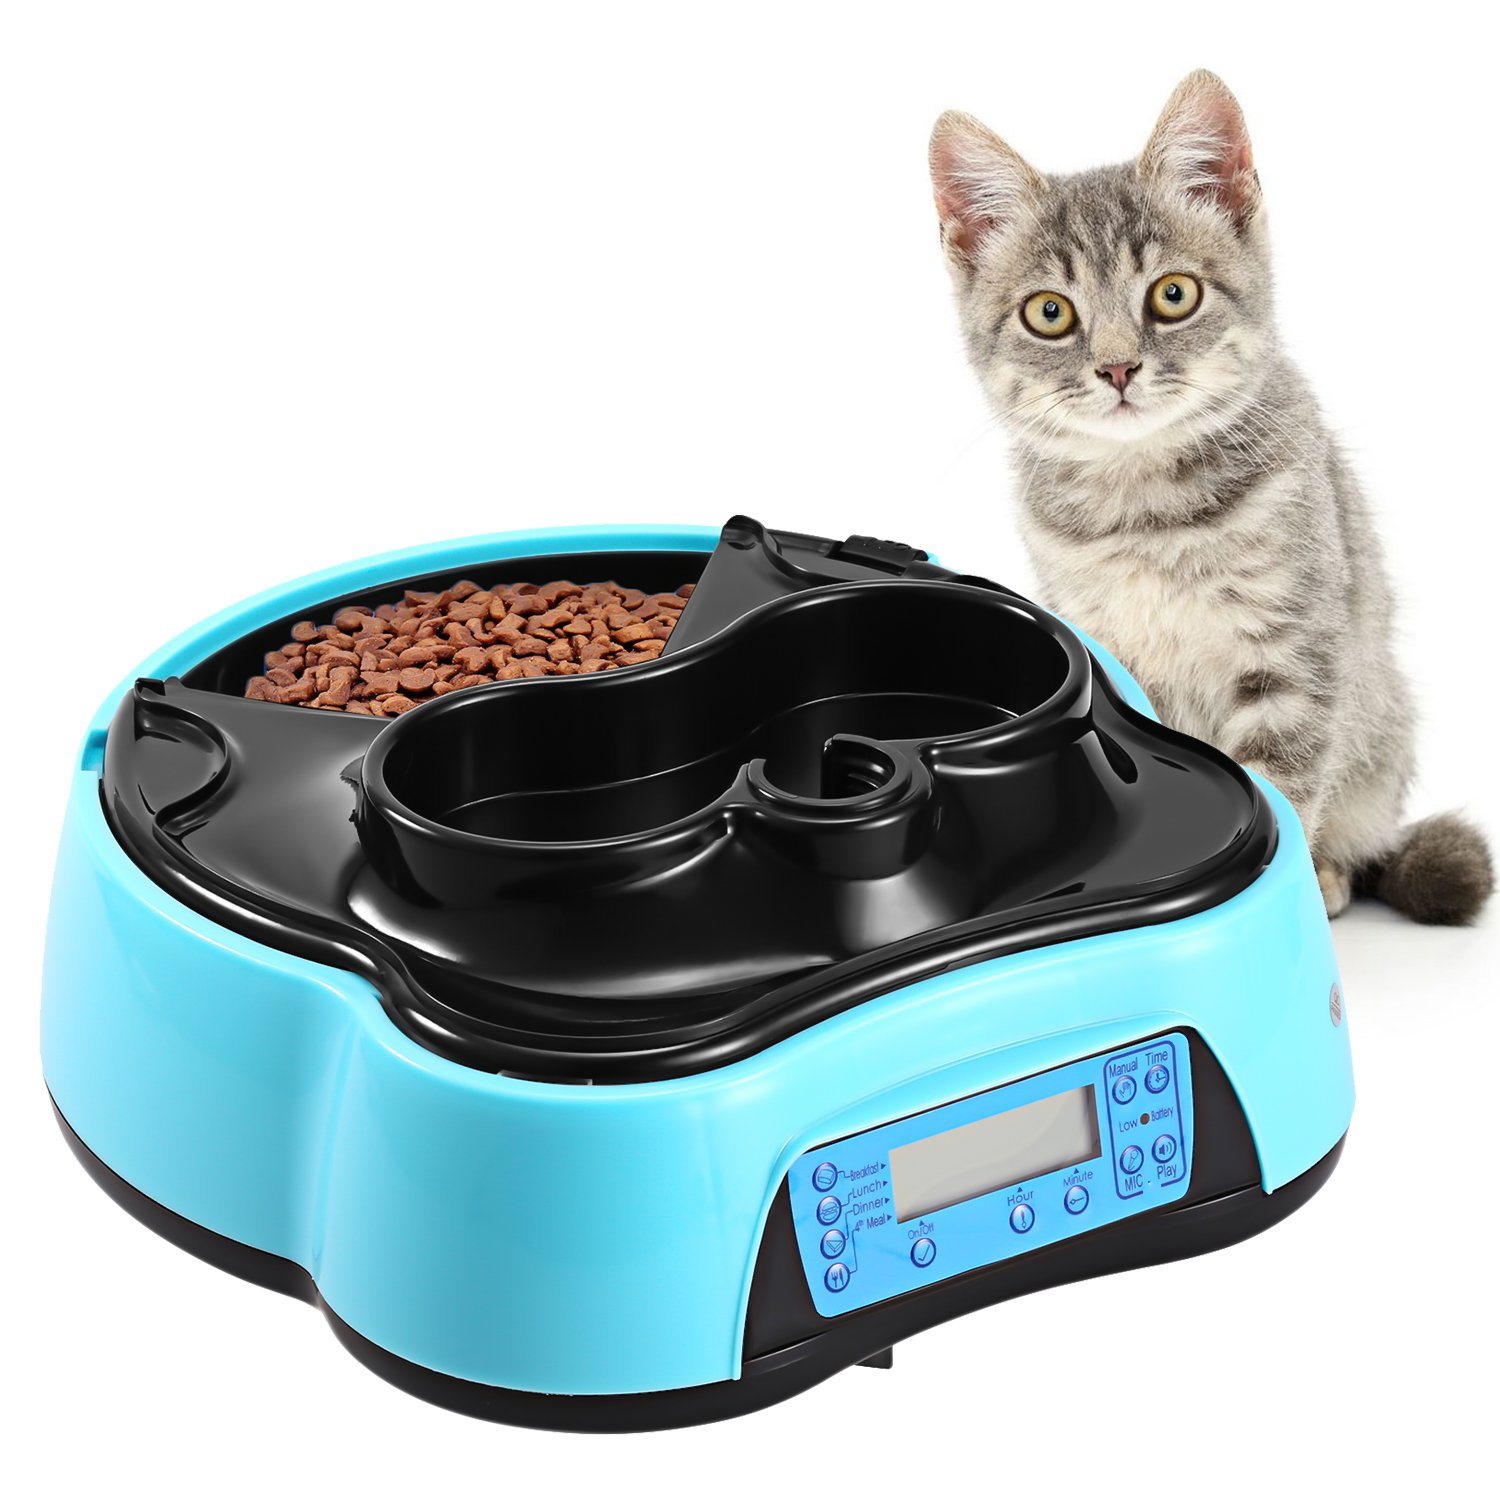 Sailnovo Automatic Pet Feeder 4 Meals Programmable Cat feeder Water Trays for Dog Puppy (4 Meals Pet Feeder)